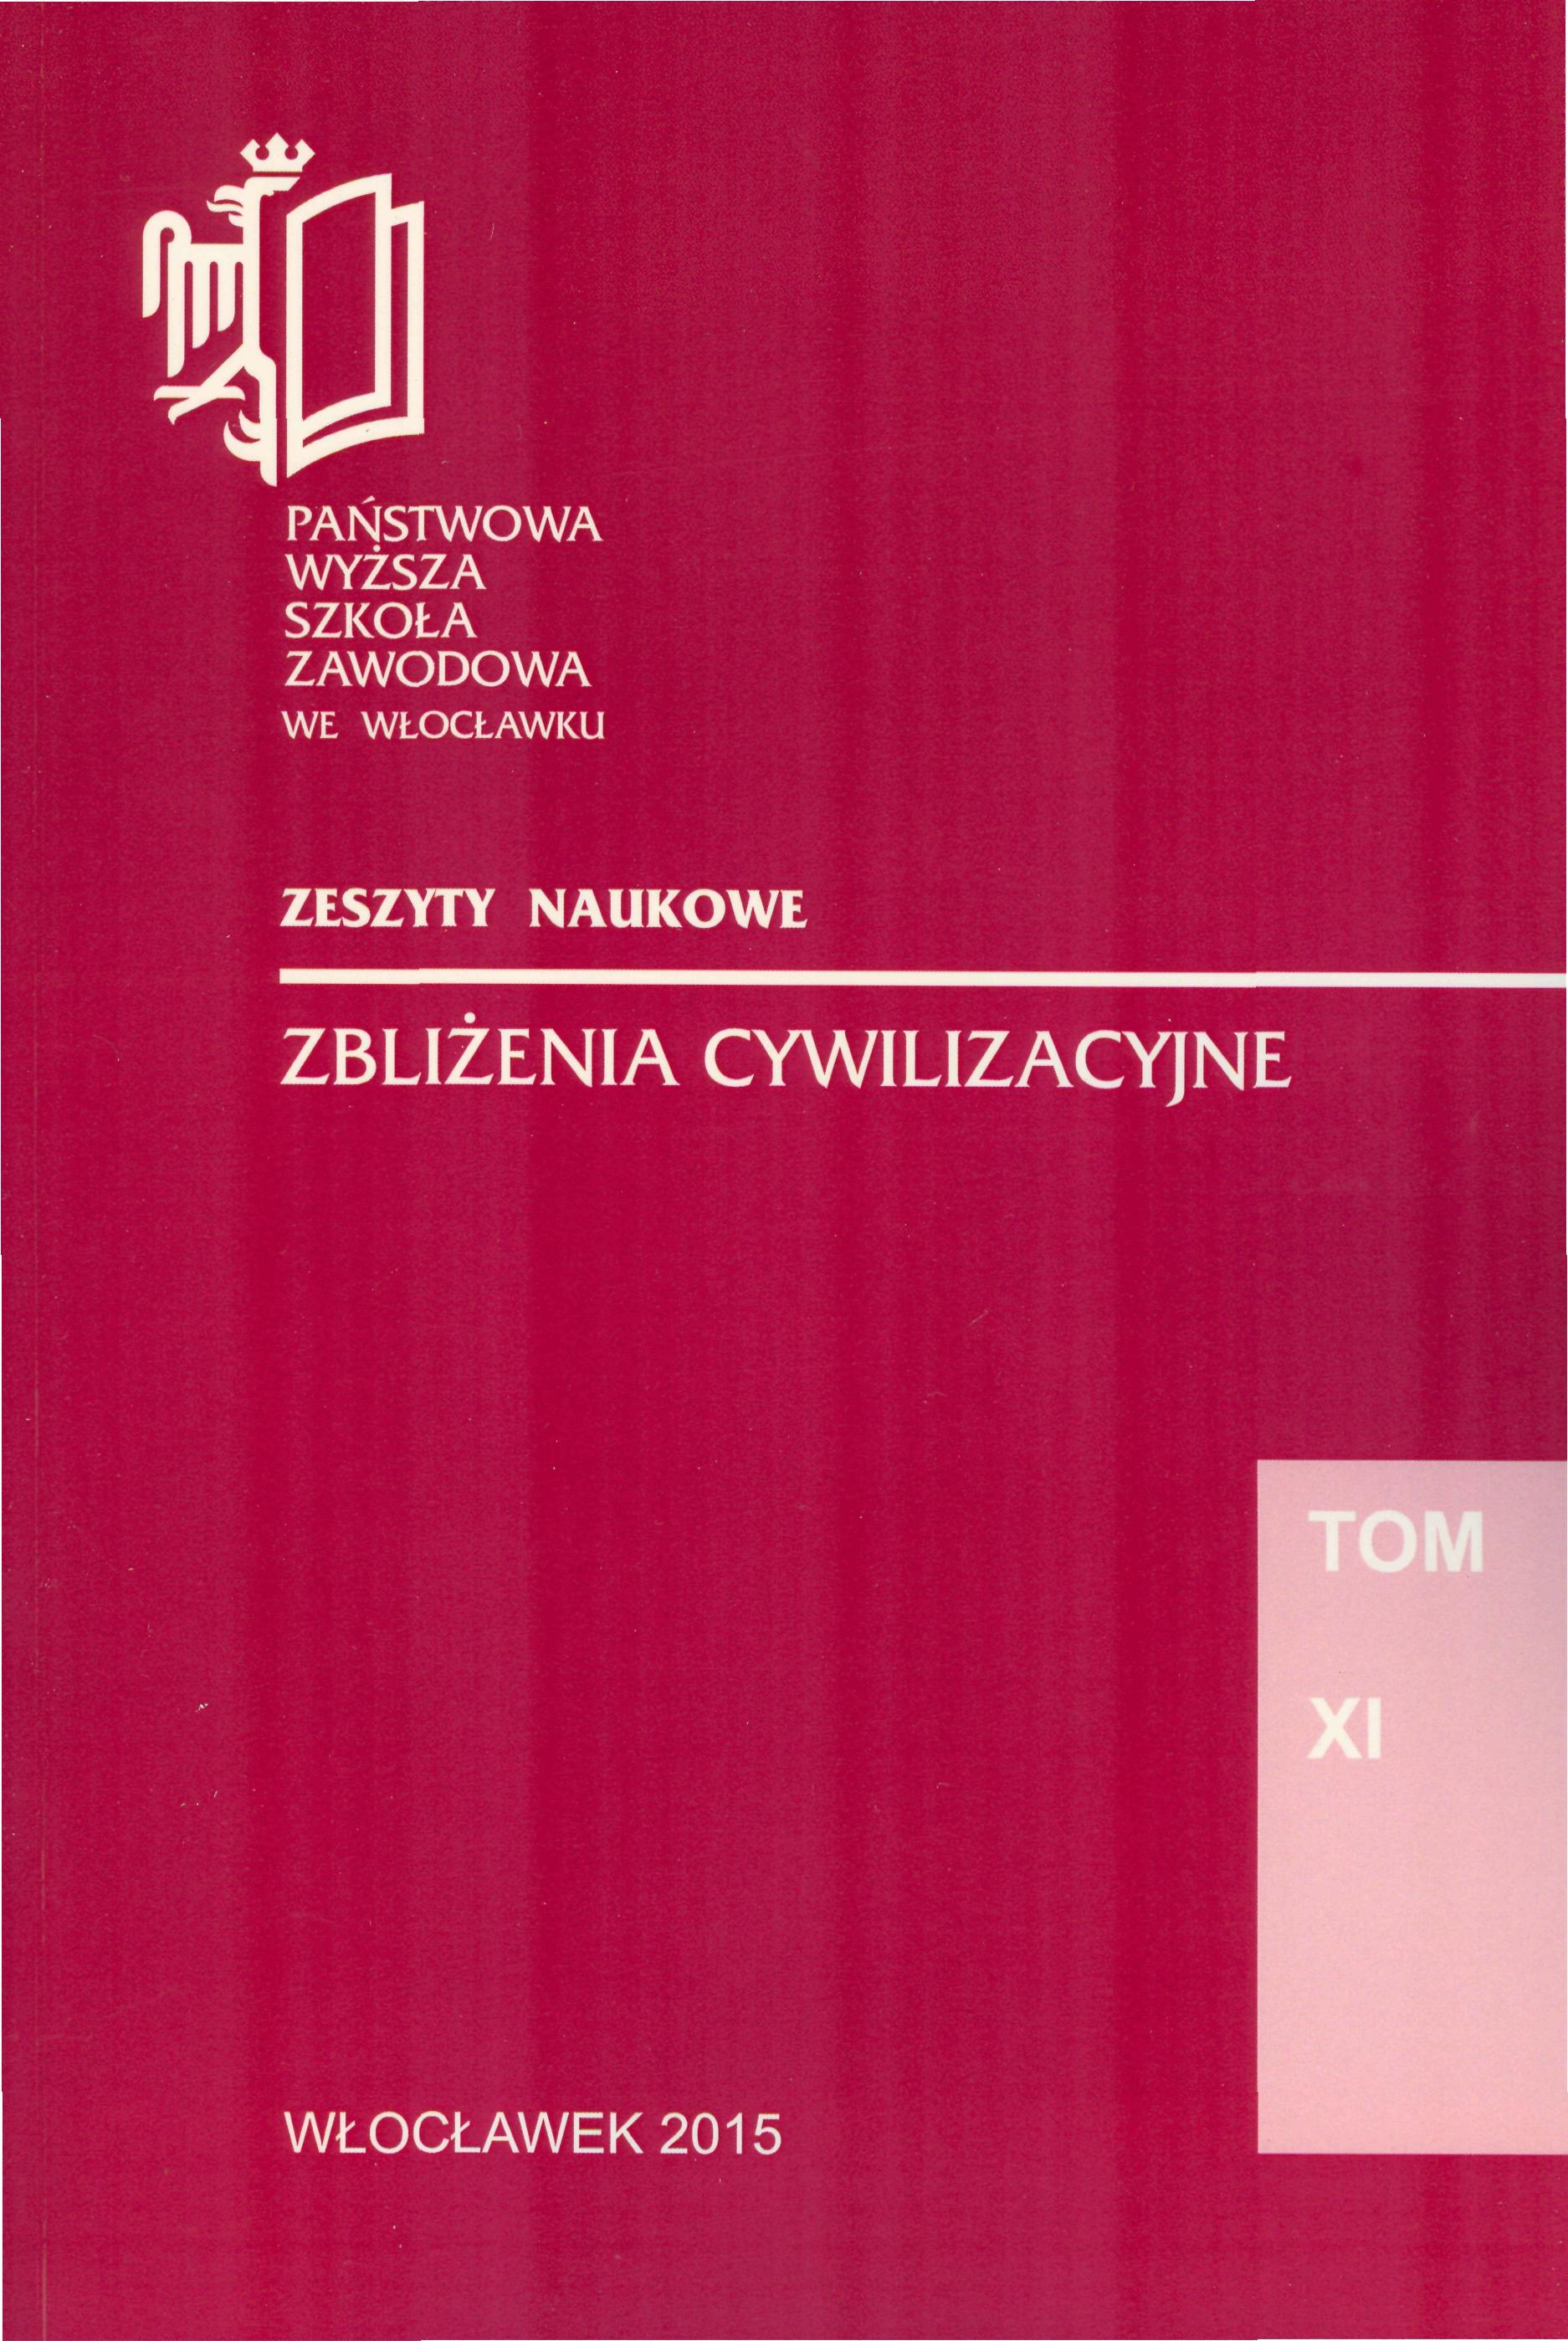 images/books/201510070934560.okładka na stronę.jpg?category_id=8&product_id=113